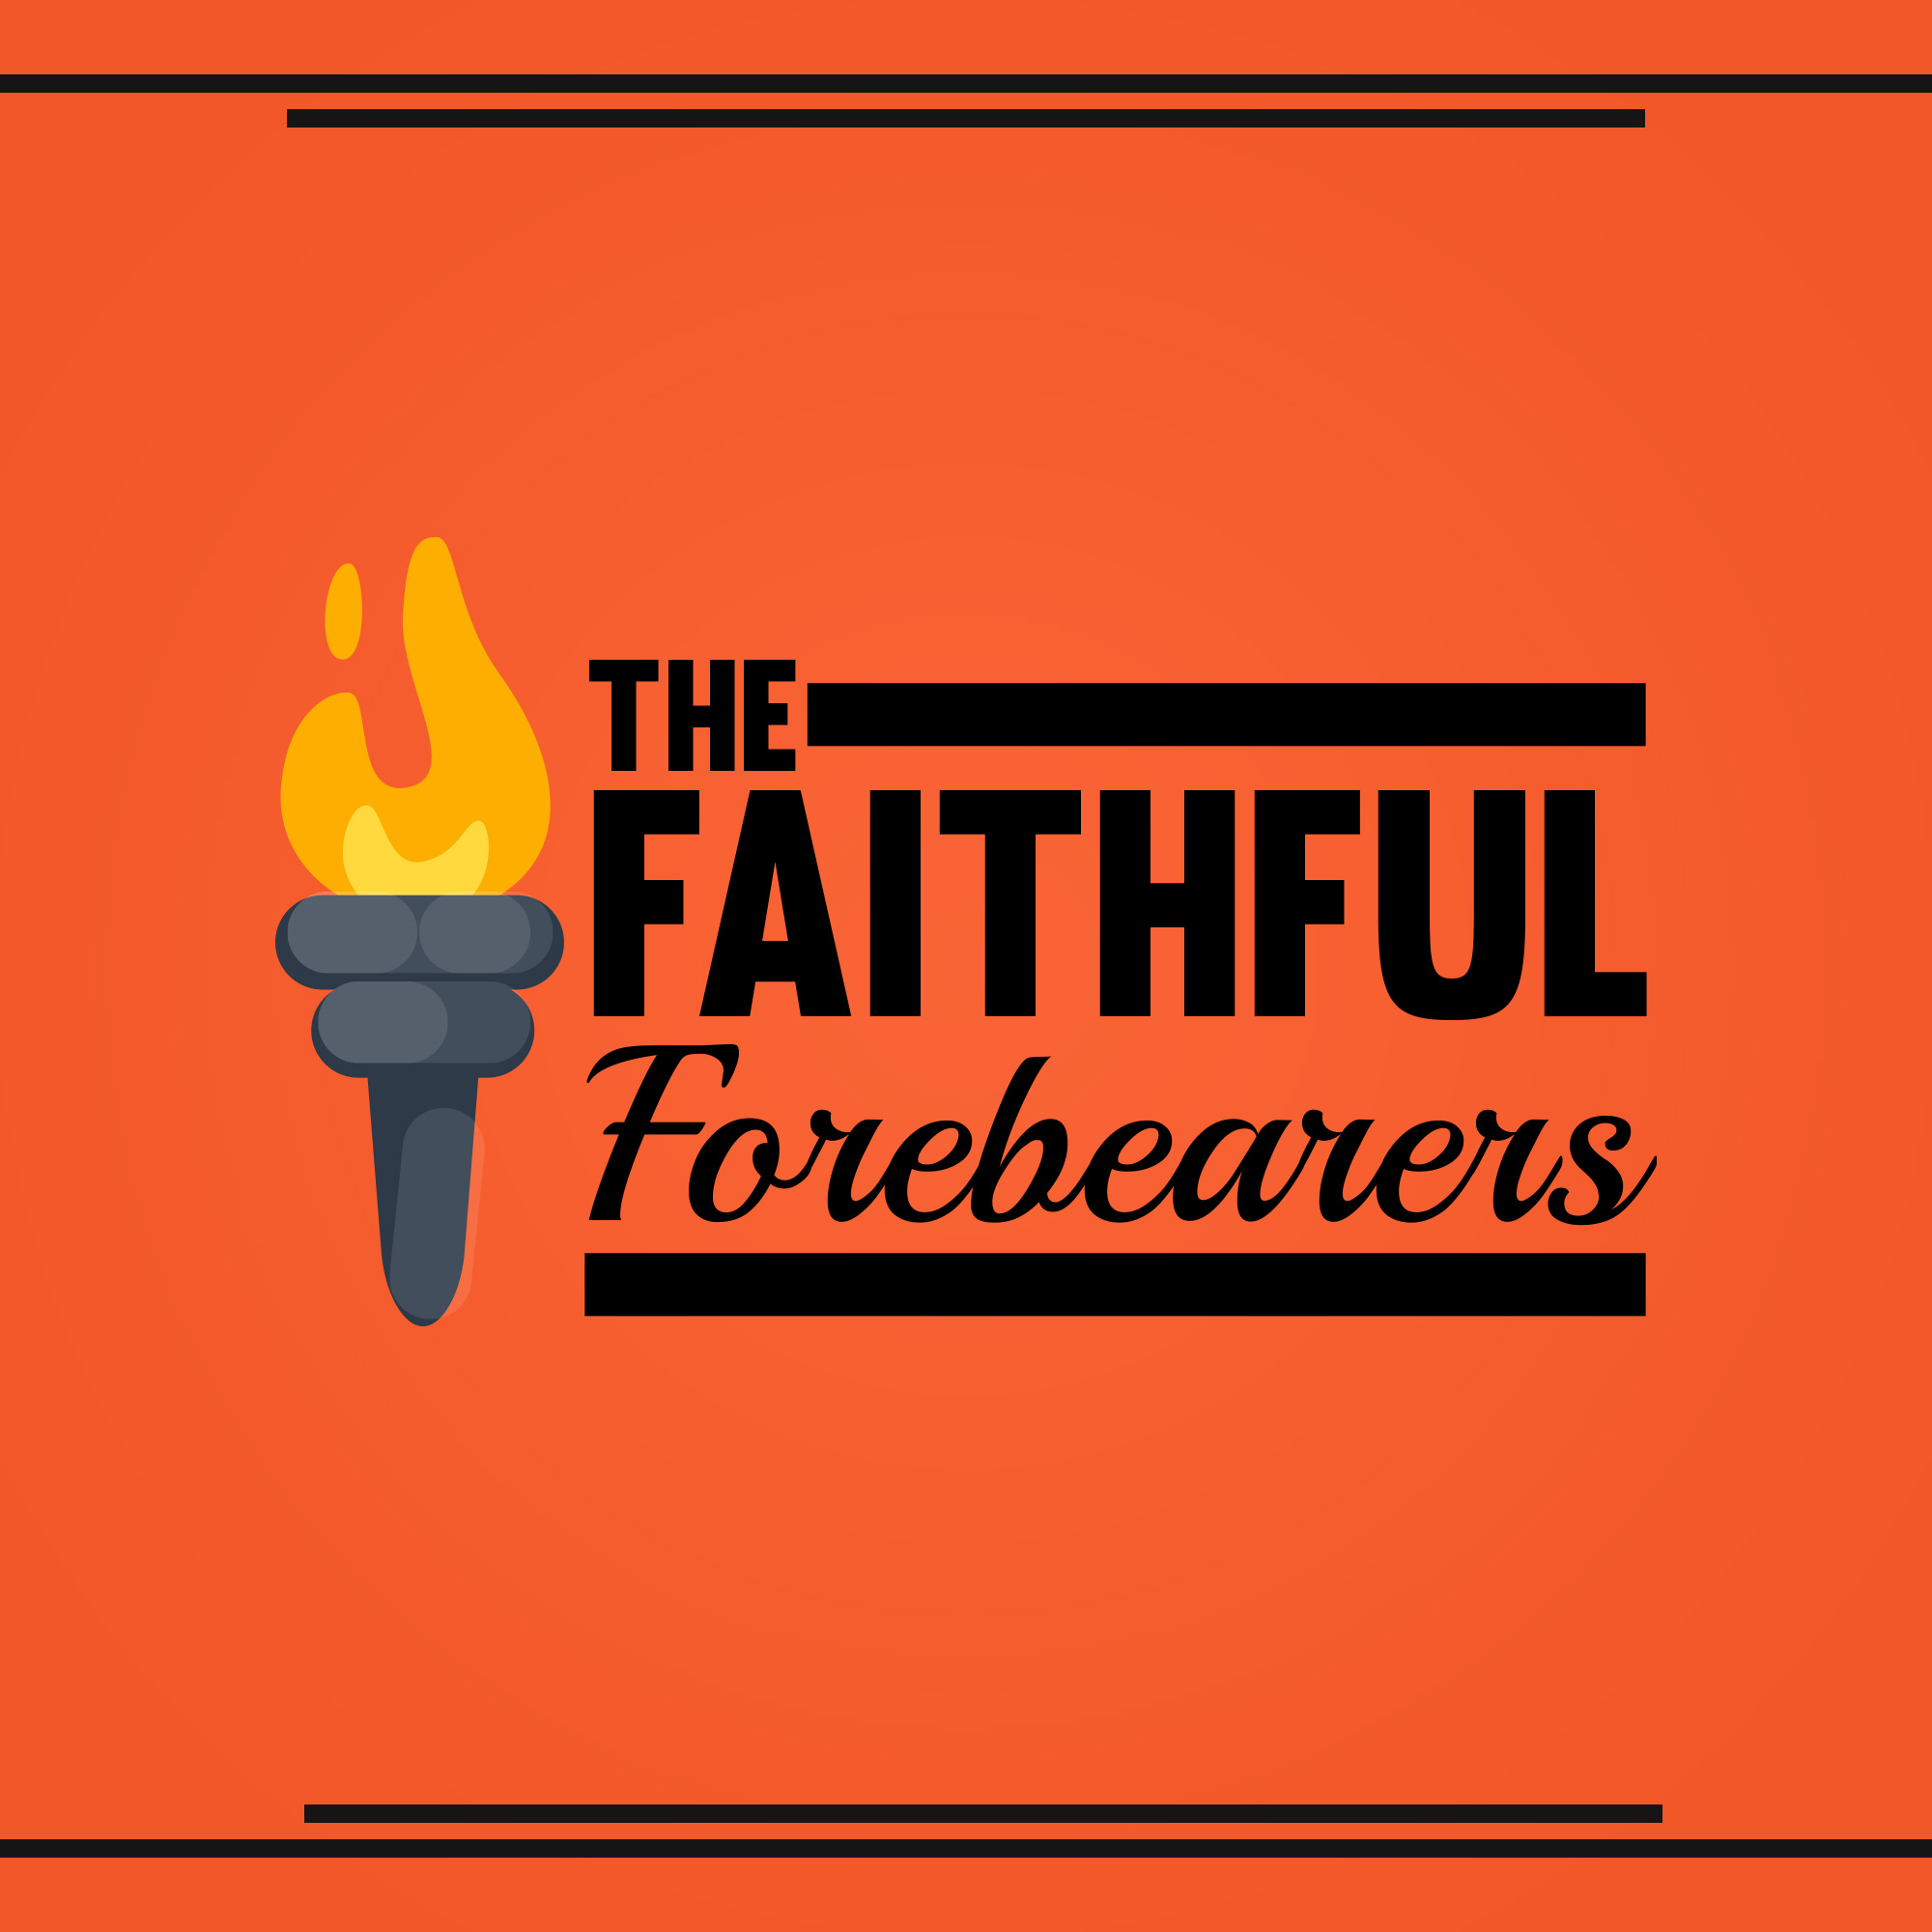 The Faithful Forebearers